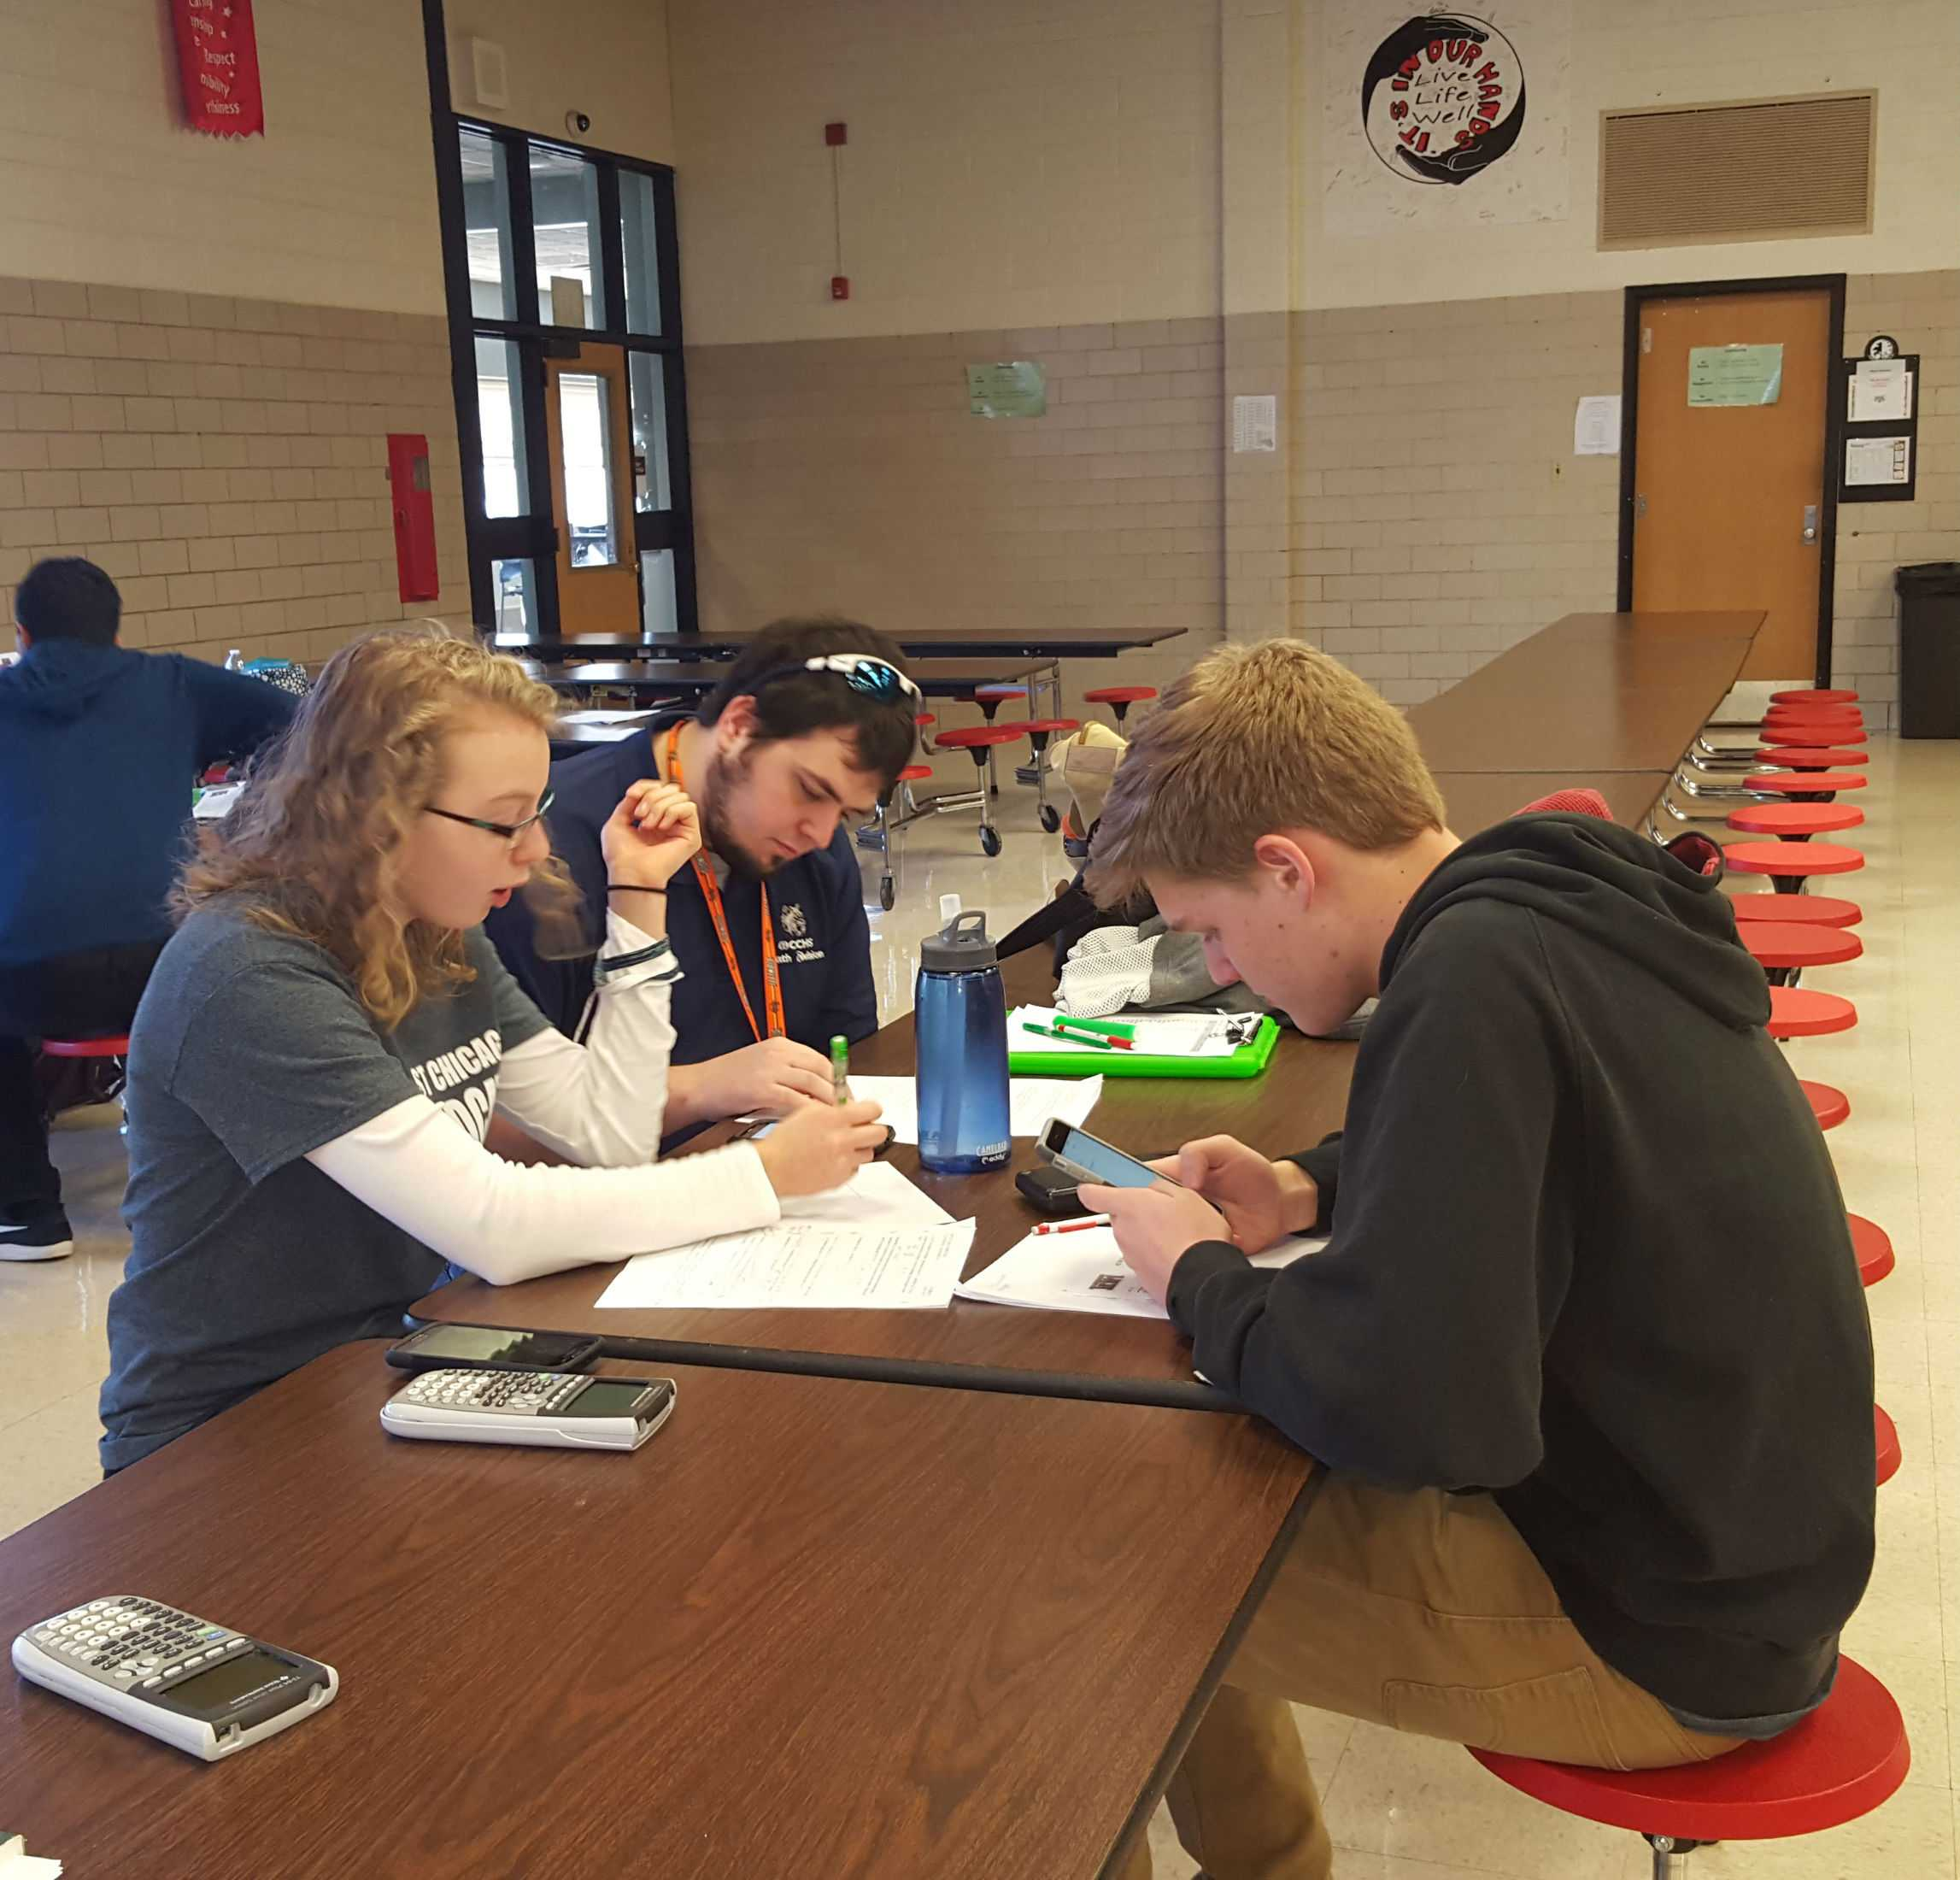 Regionals for math were held at Batavia High School against eight other schools. Math teacher Charles Vokes helps juniors Jenna Palka and David McGhee prepare for a test.